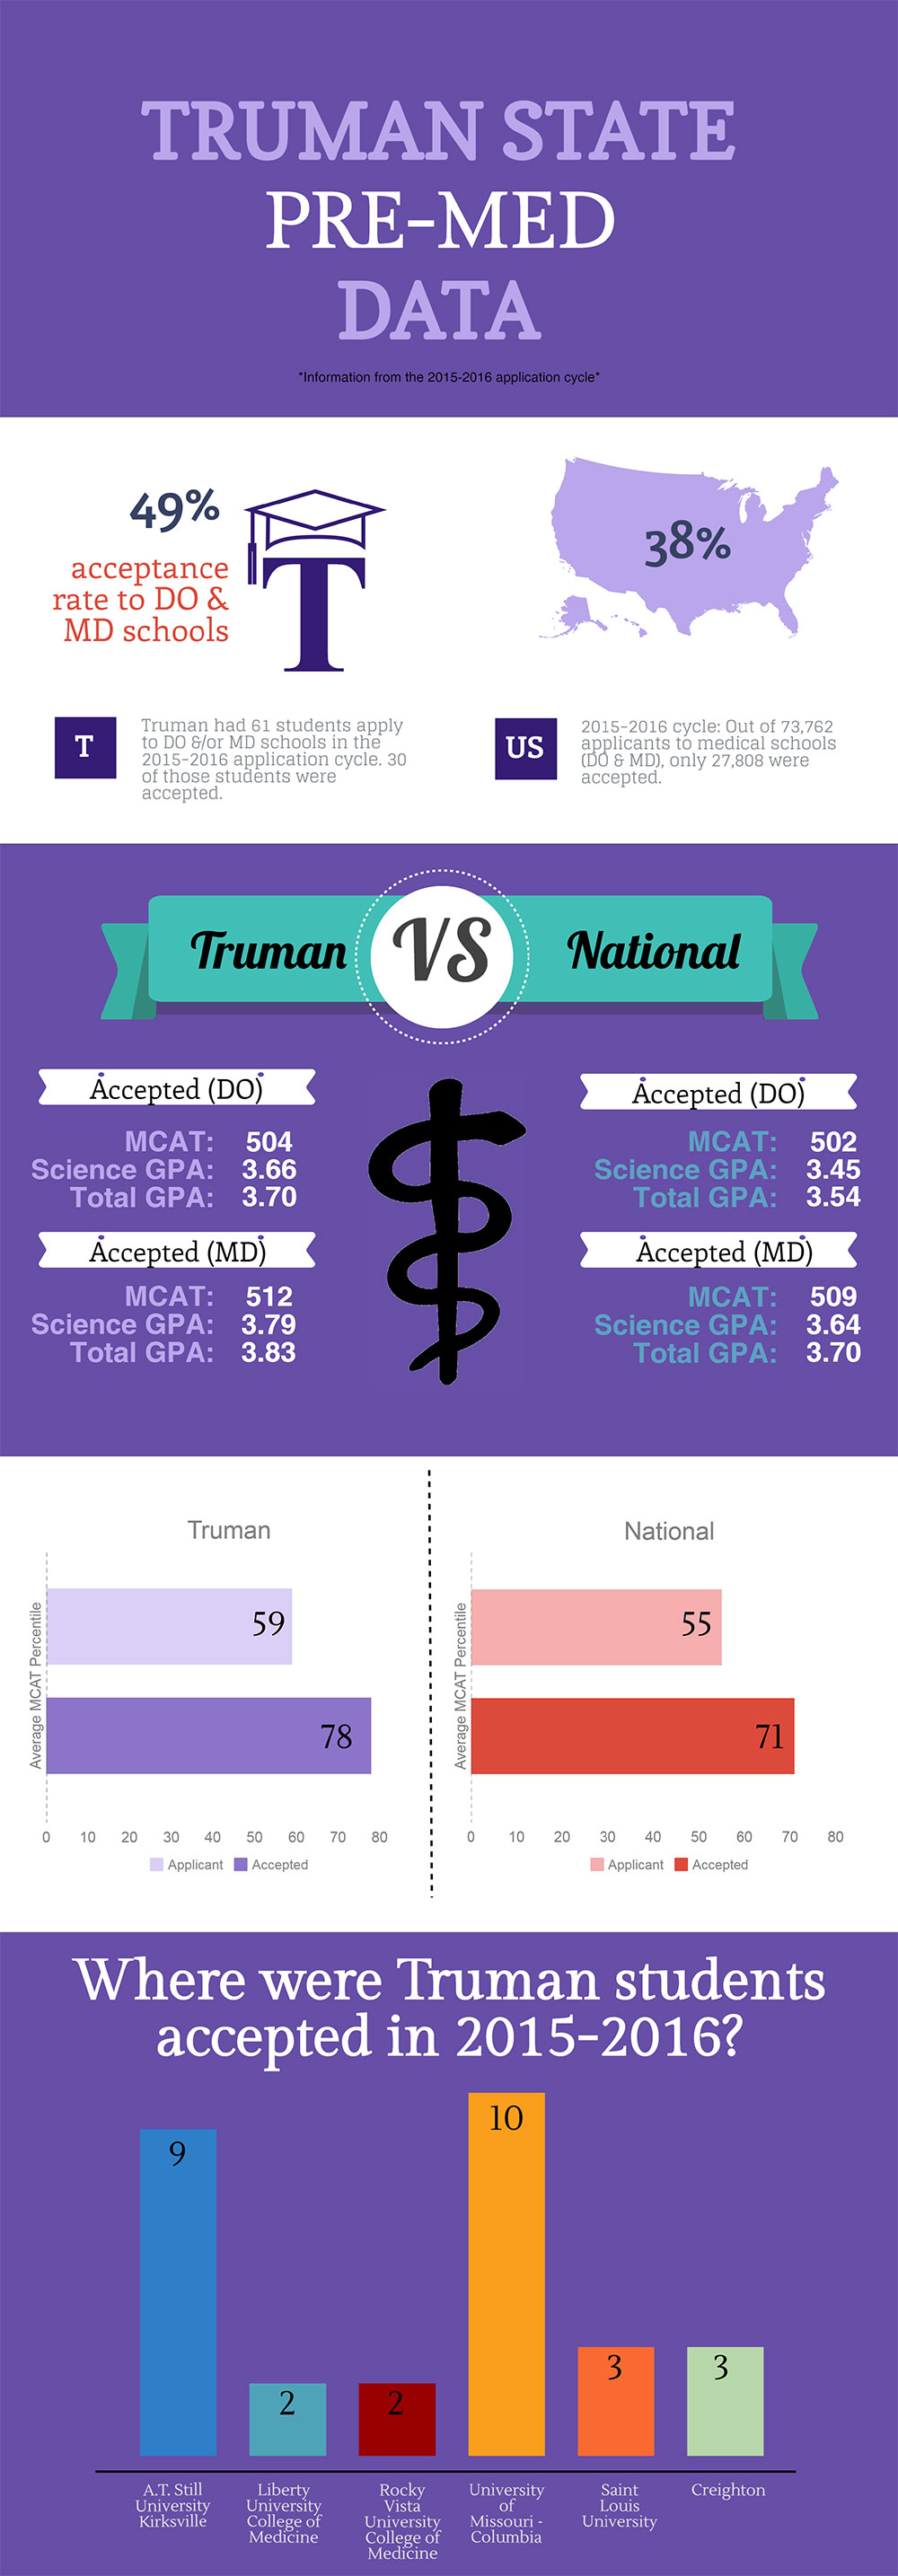 Why Pre-Med at Truman - infographic